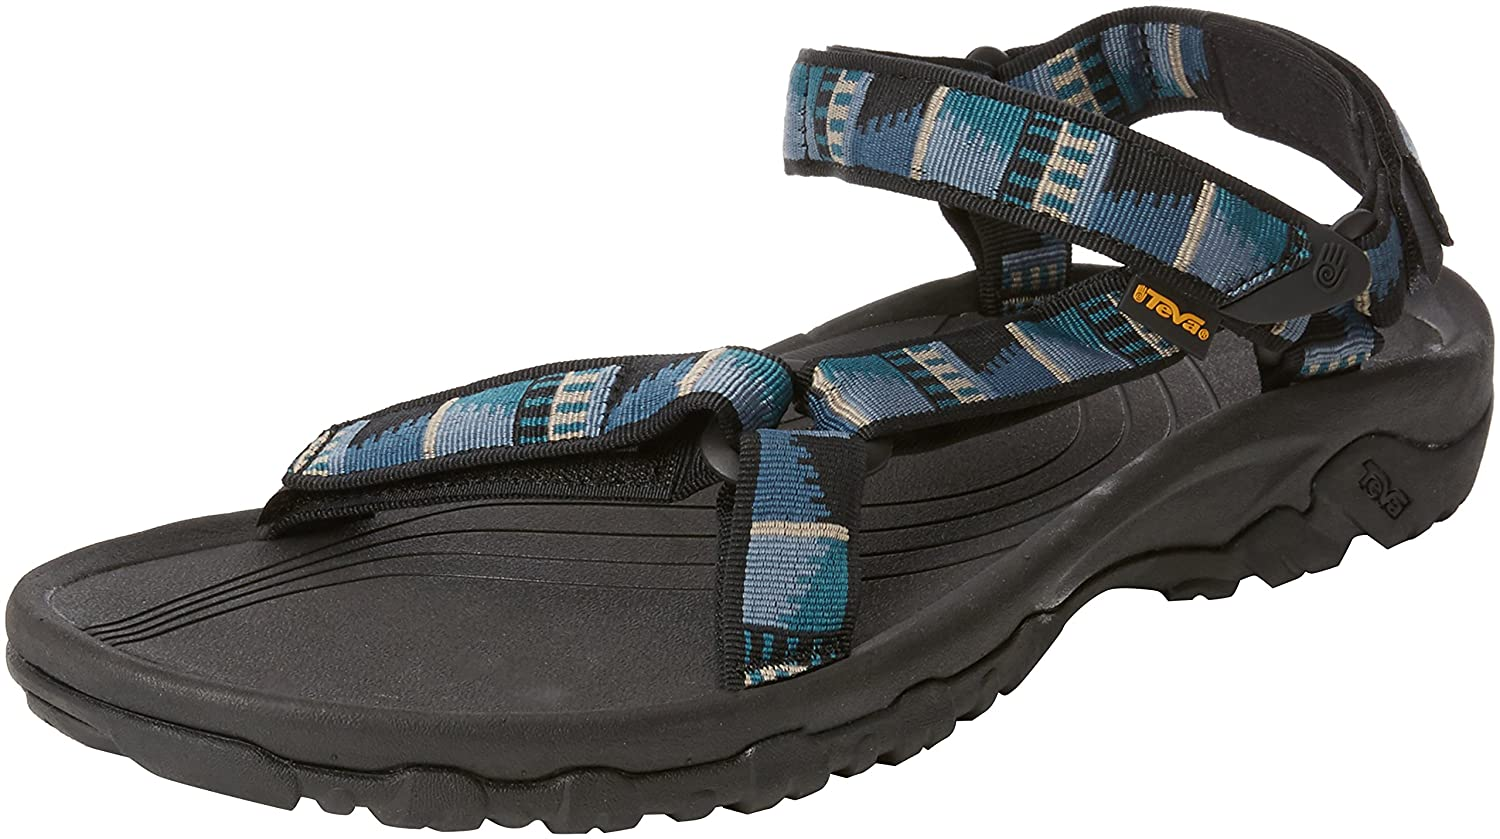 8c4cffeee93e3 Teva Men s Hurricane XLT Sports and Outdoor Lifestyle Sandal